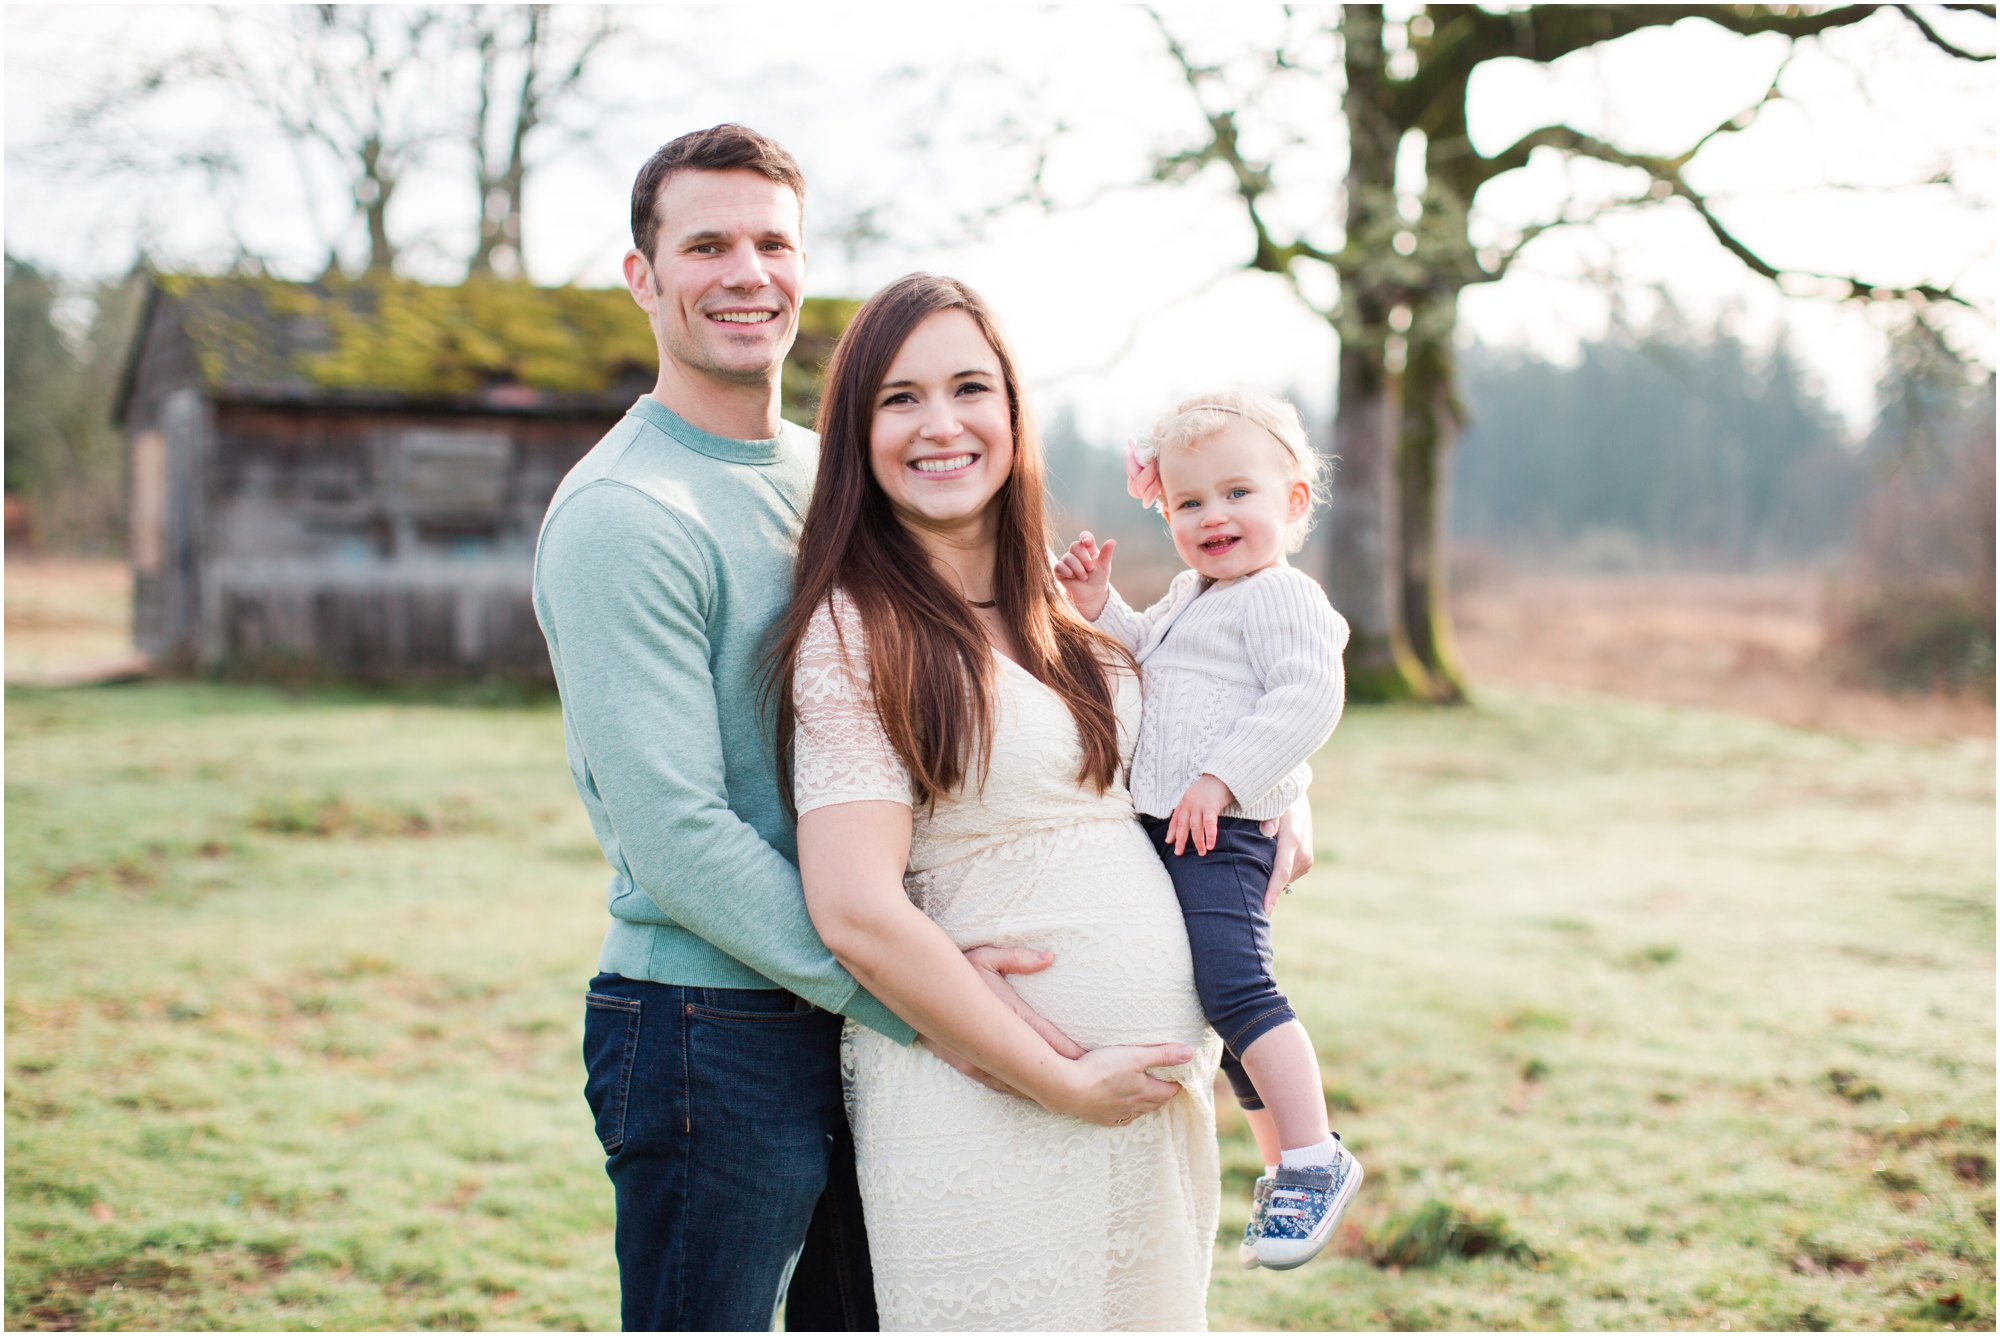 Maternity family photos by Briana Calderon Photography based in the Greater Seattle & Tacoma, WA_1014.jpg